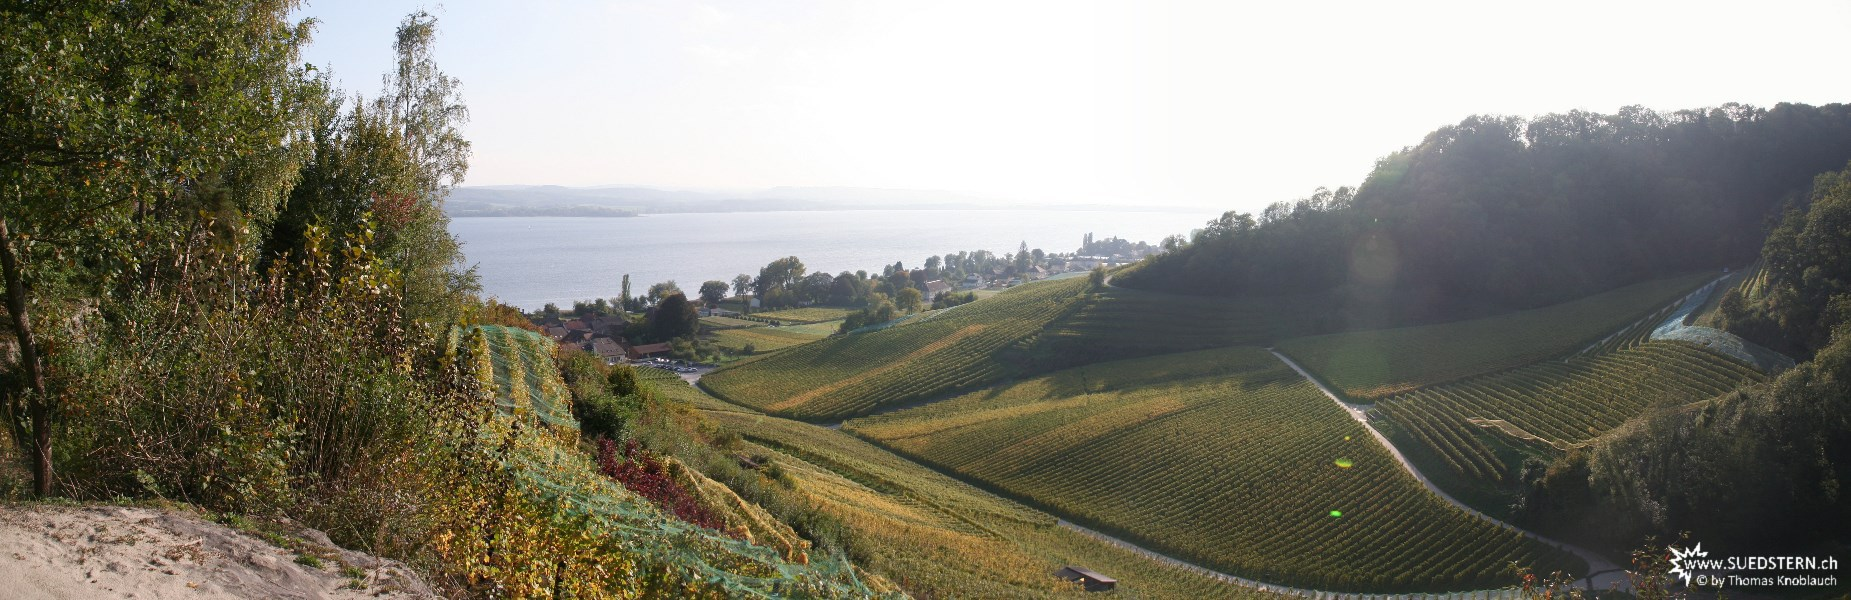 2007-10-06 - Panoramic view of Murtensee 1